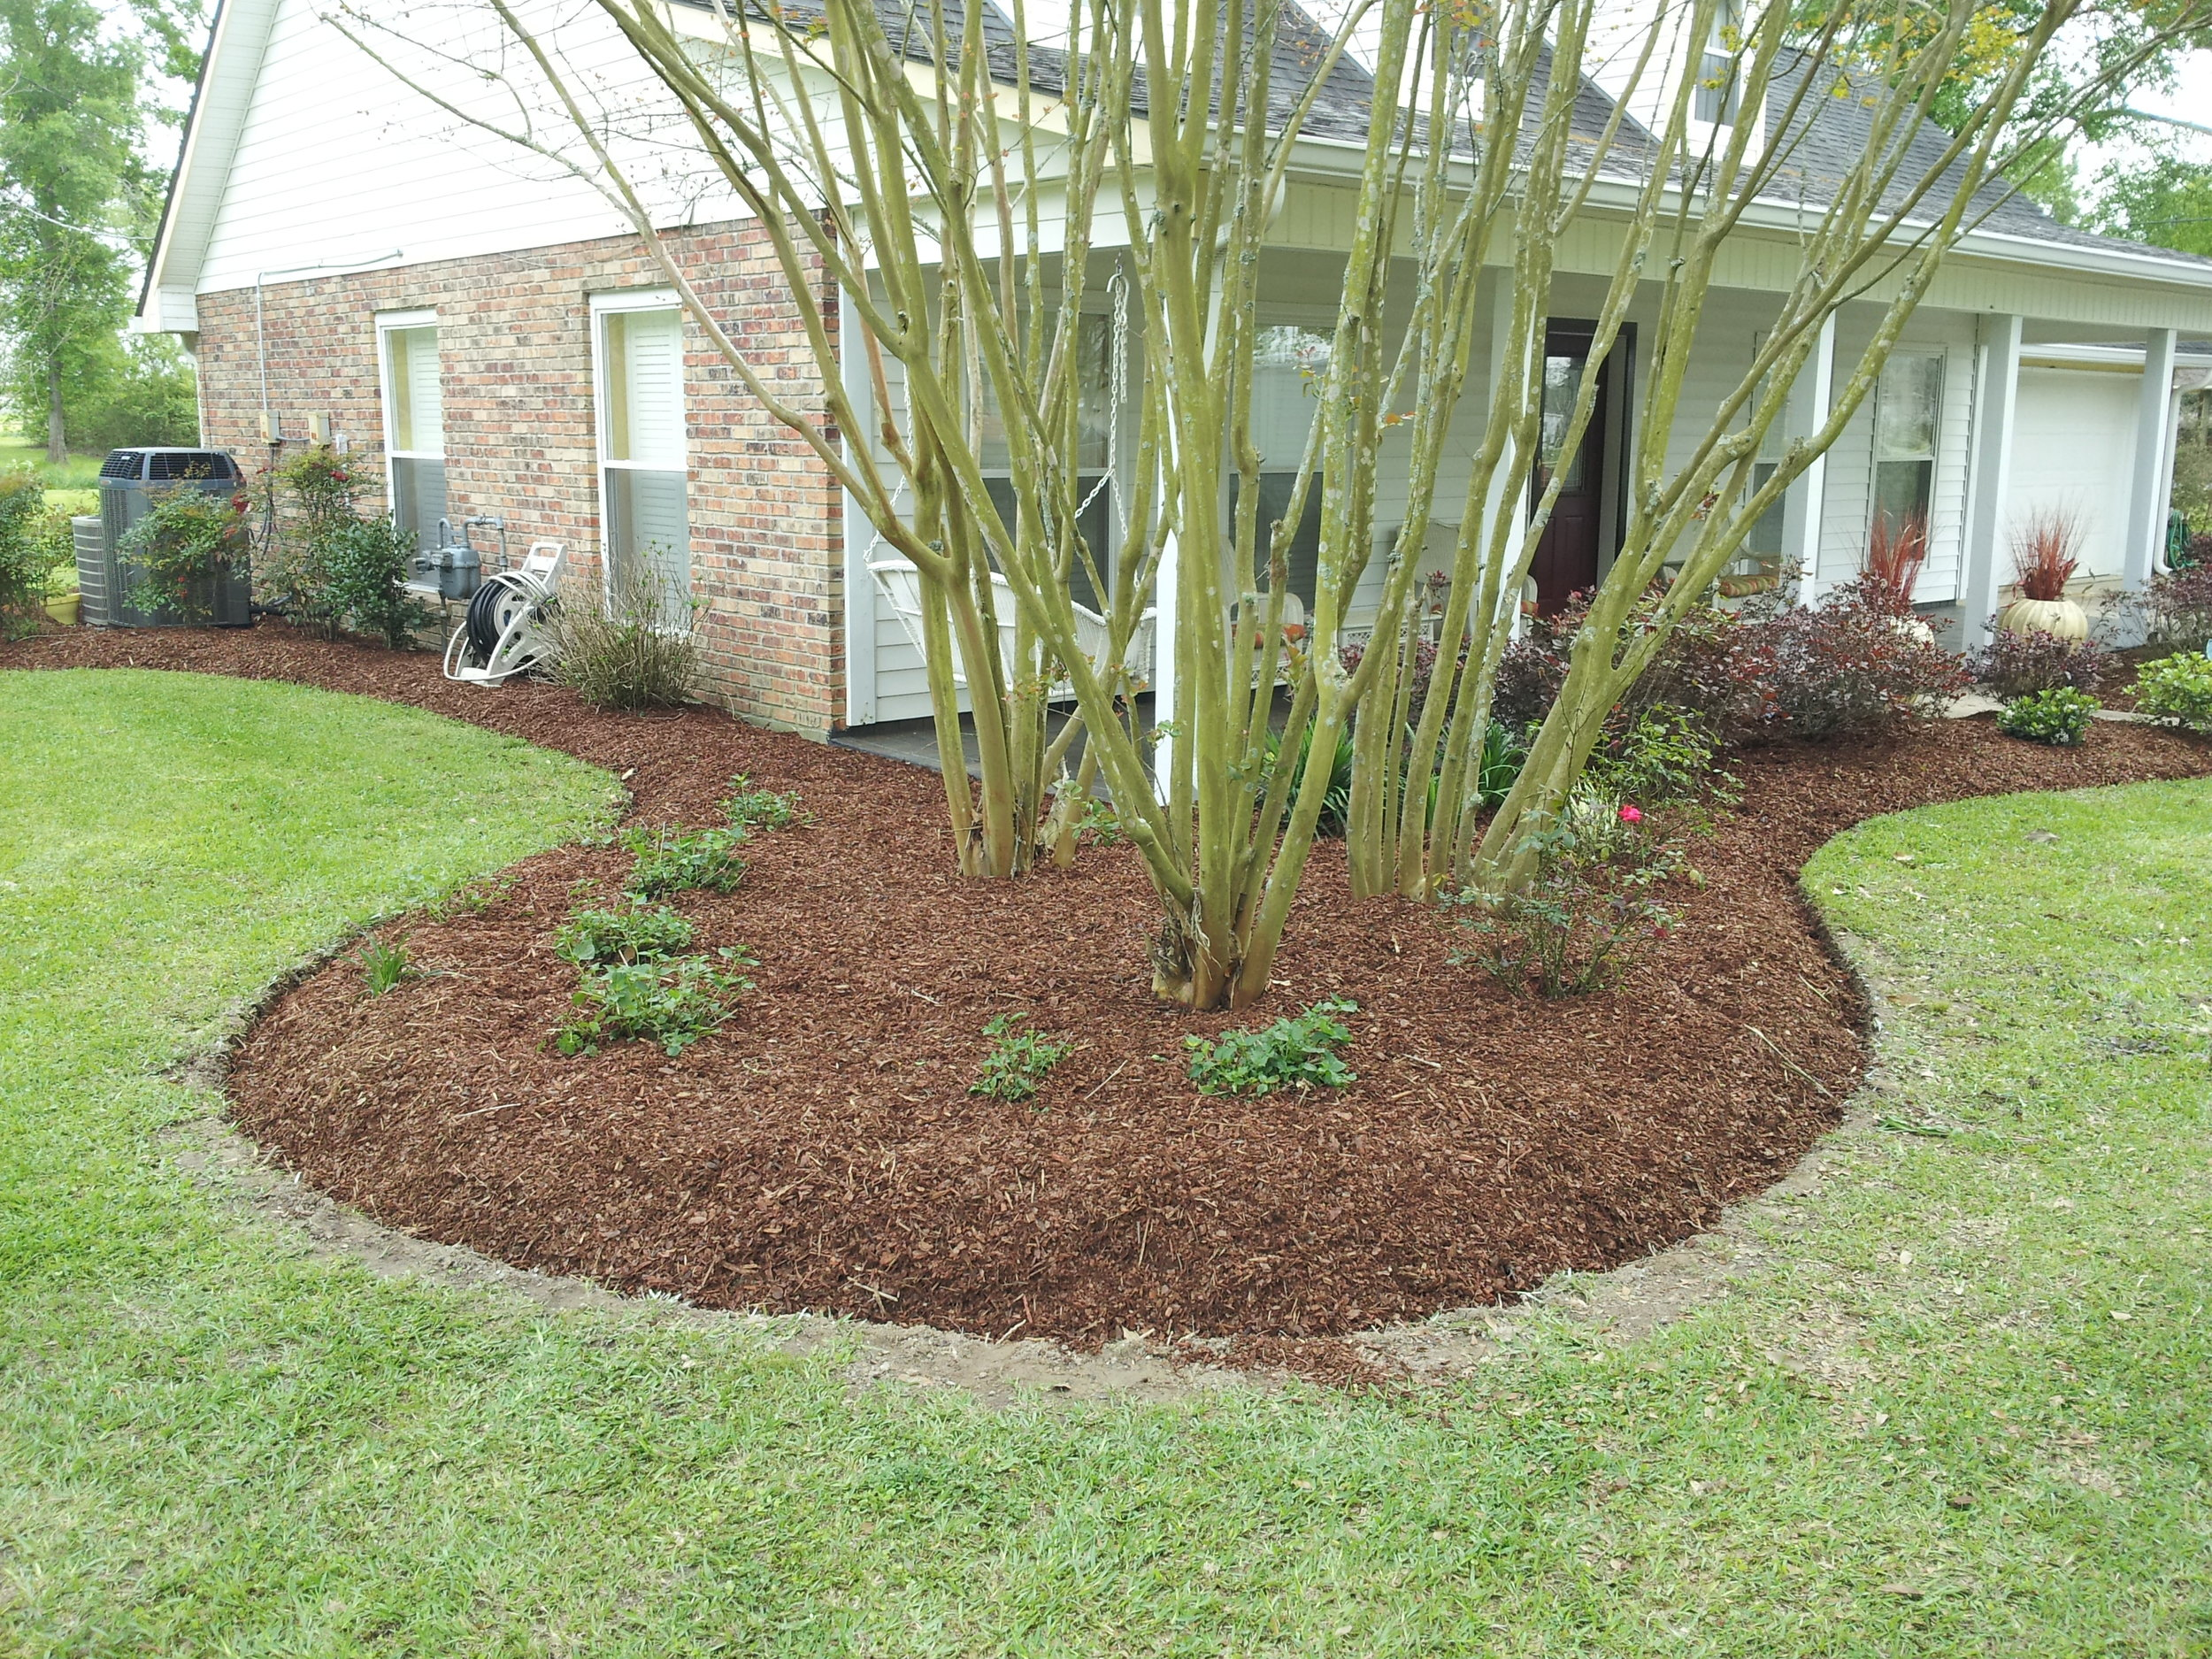 Flowerbed And Weed Maintenance Lawn Care Mulch Pruning